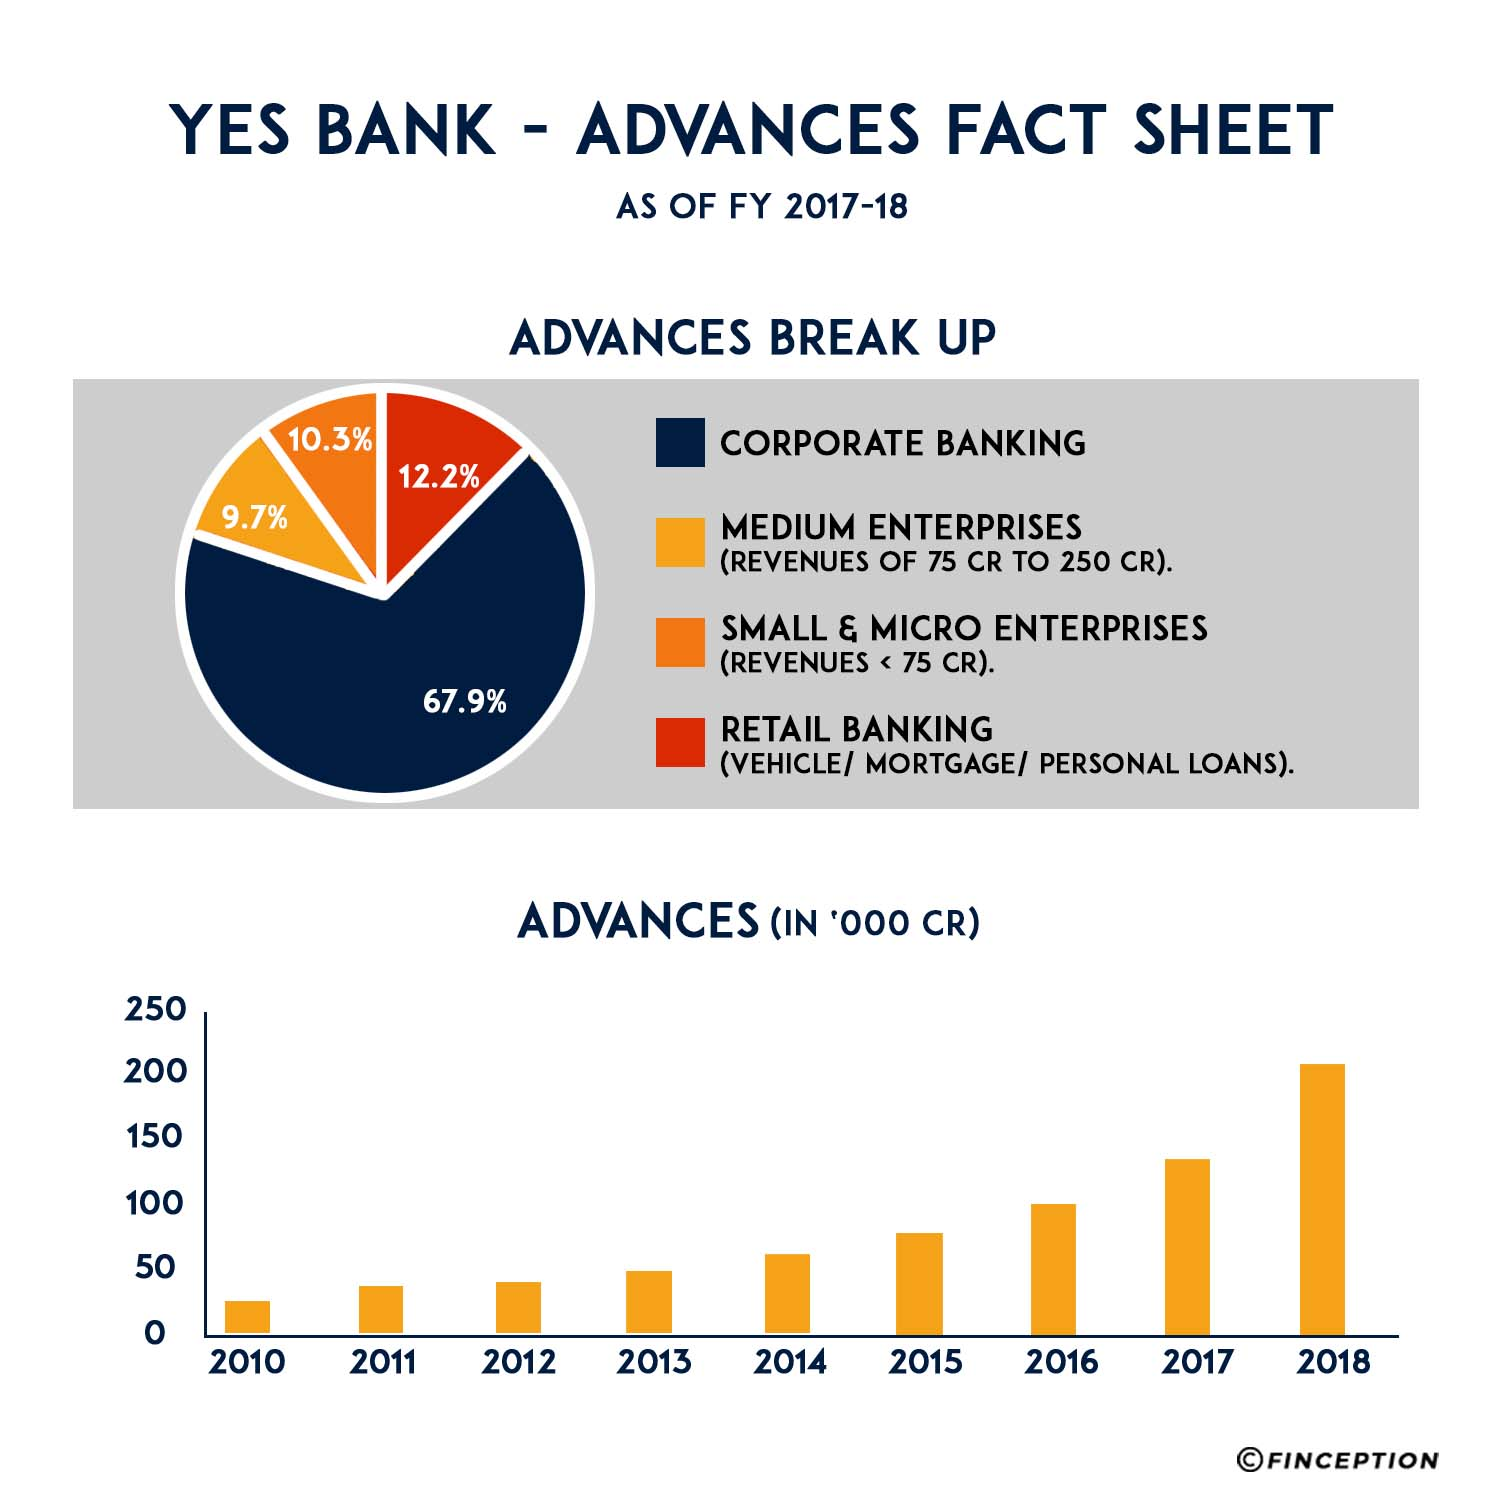 Yes Bank advances as of March 2018